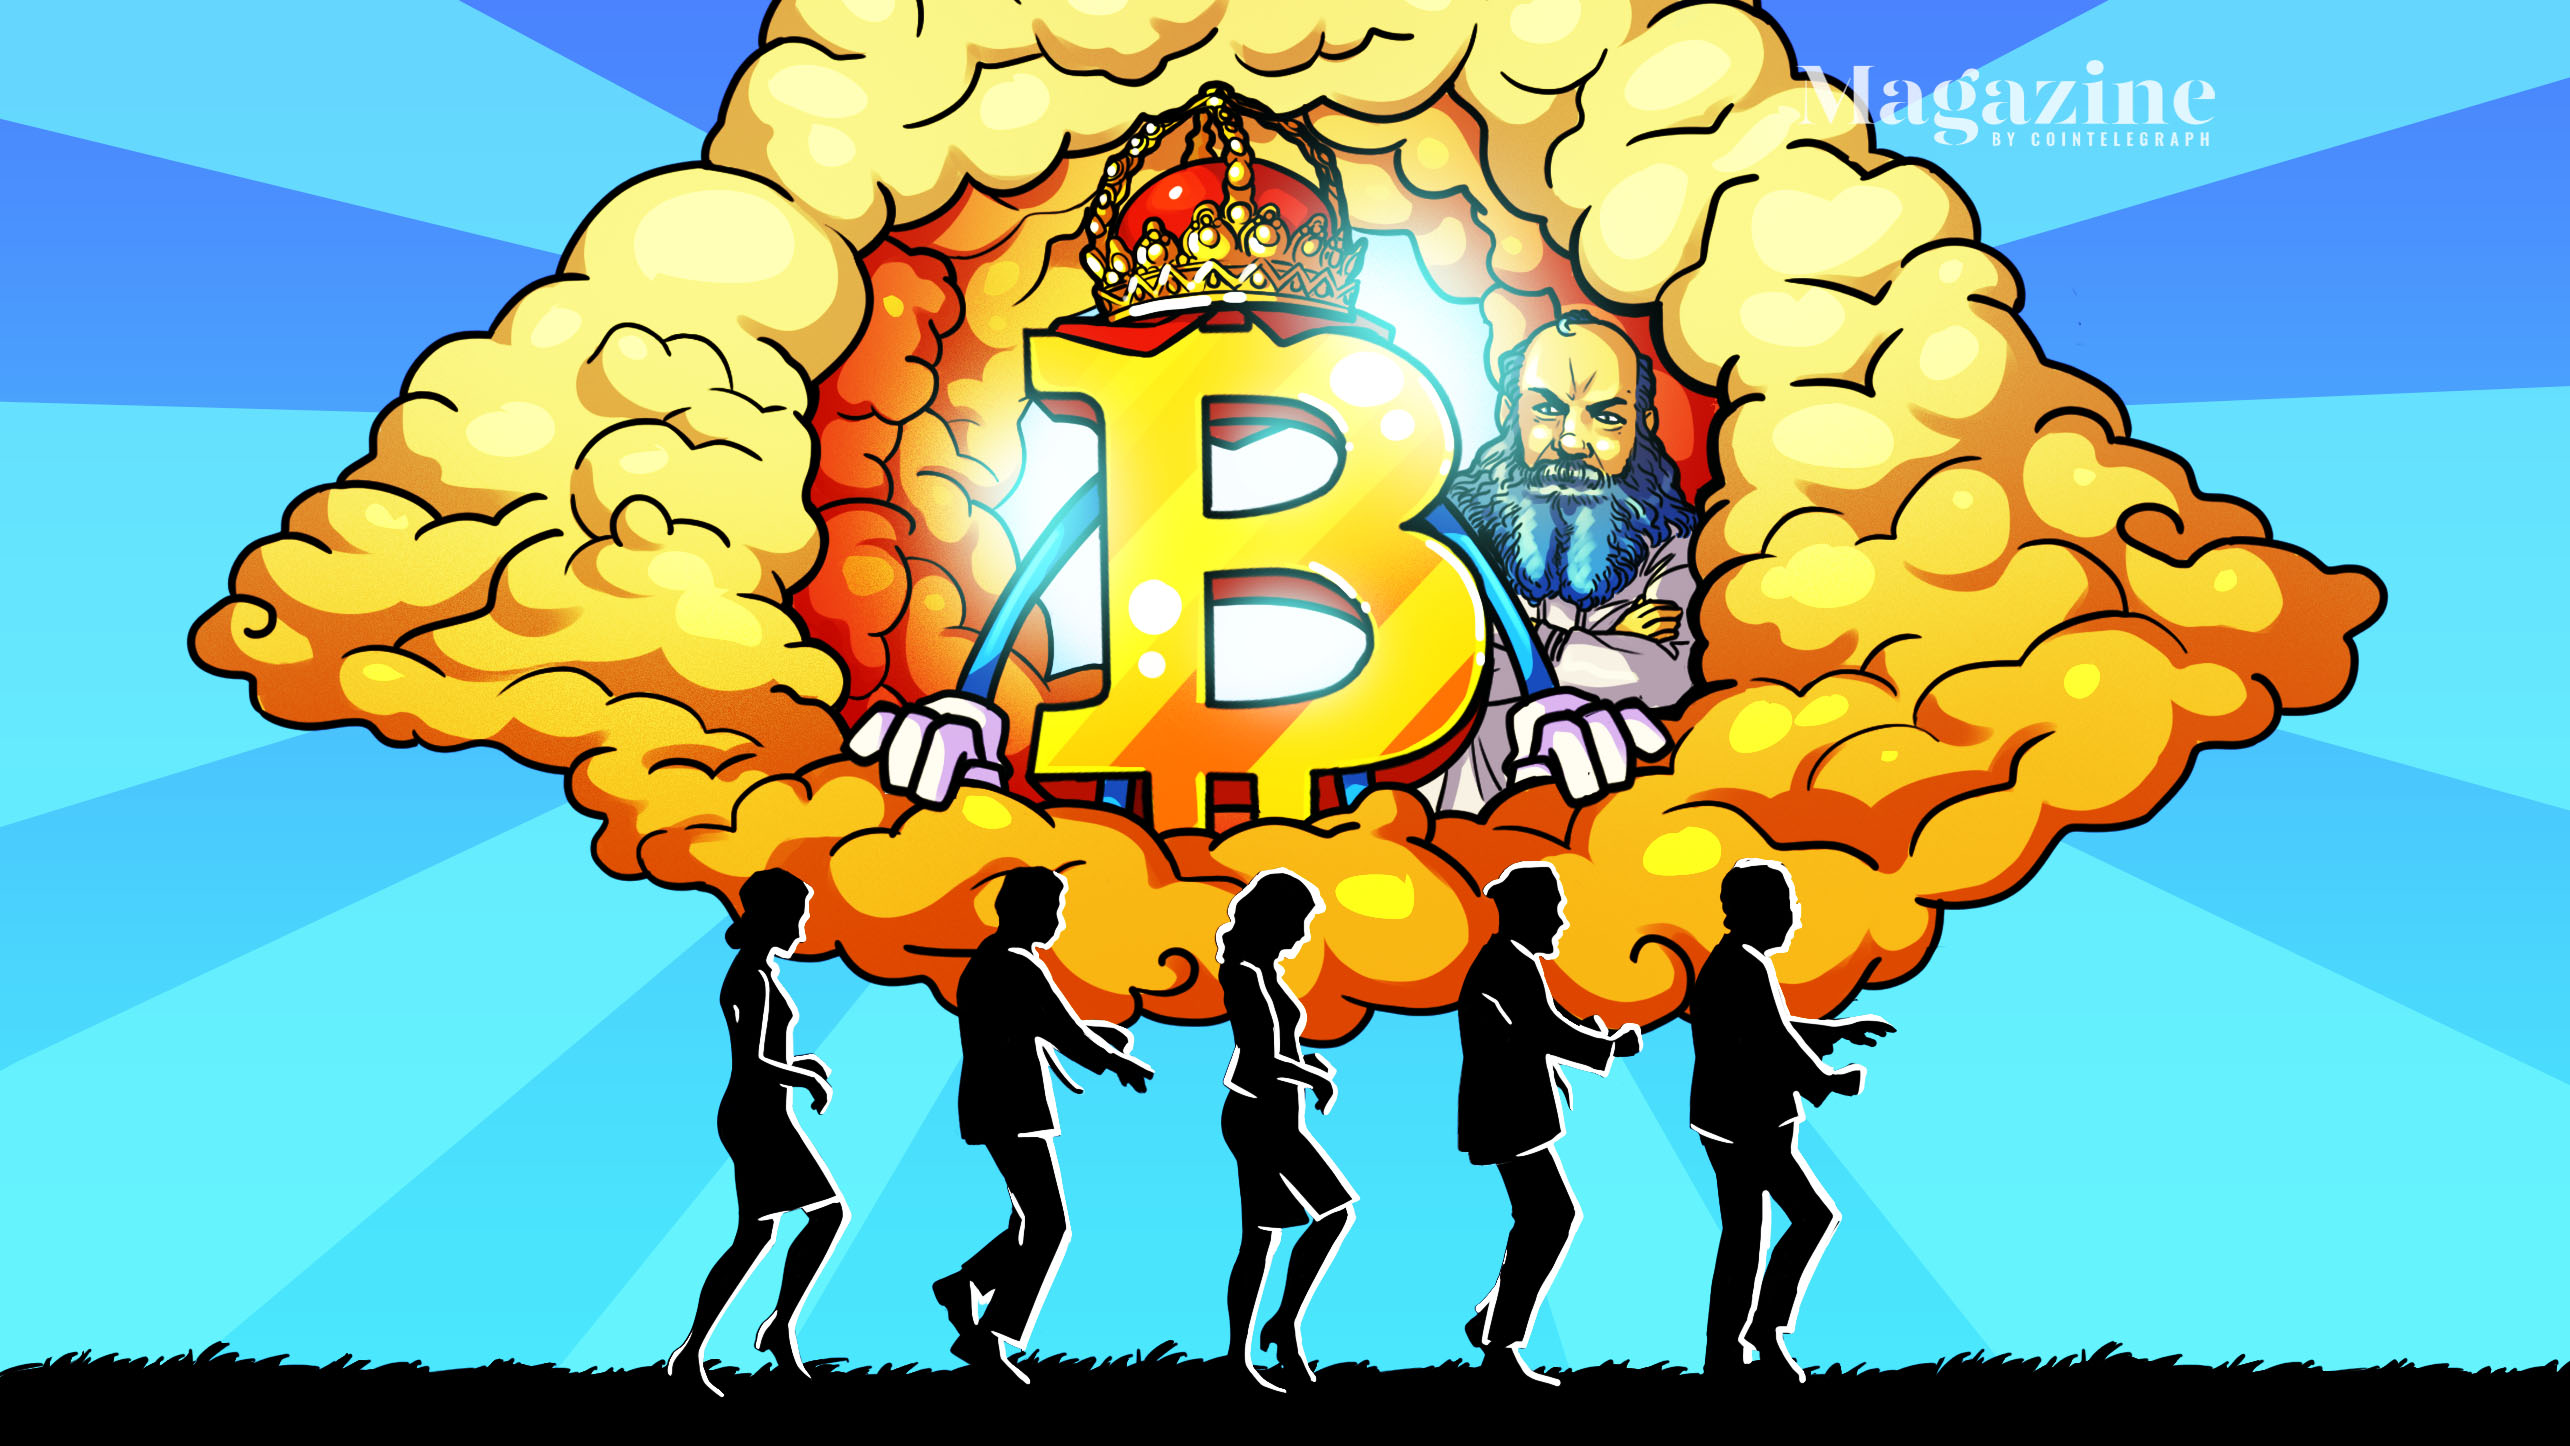 Is Bitcoin a religion? If not, it soon could be – Cointelegraph Magazine